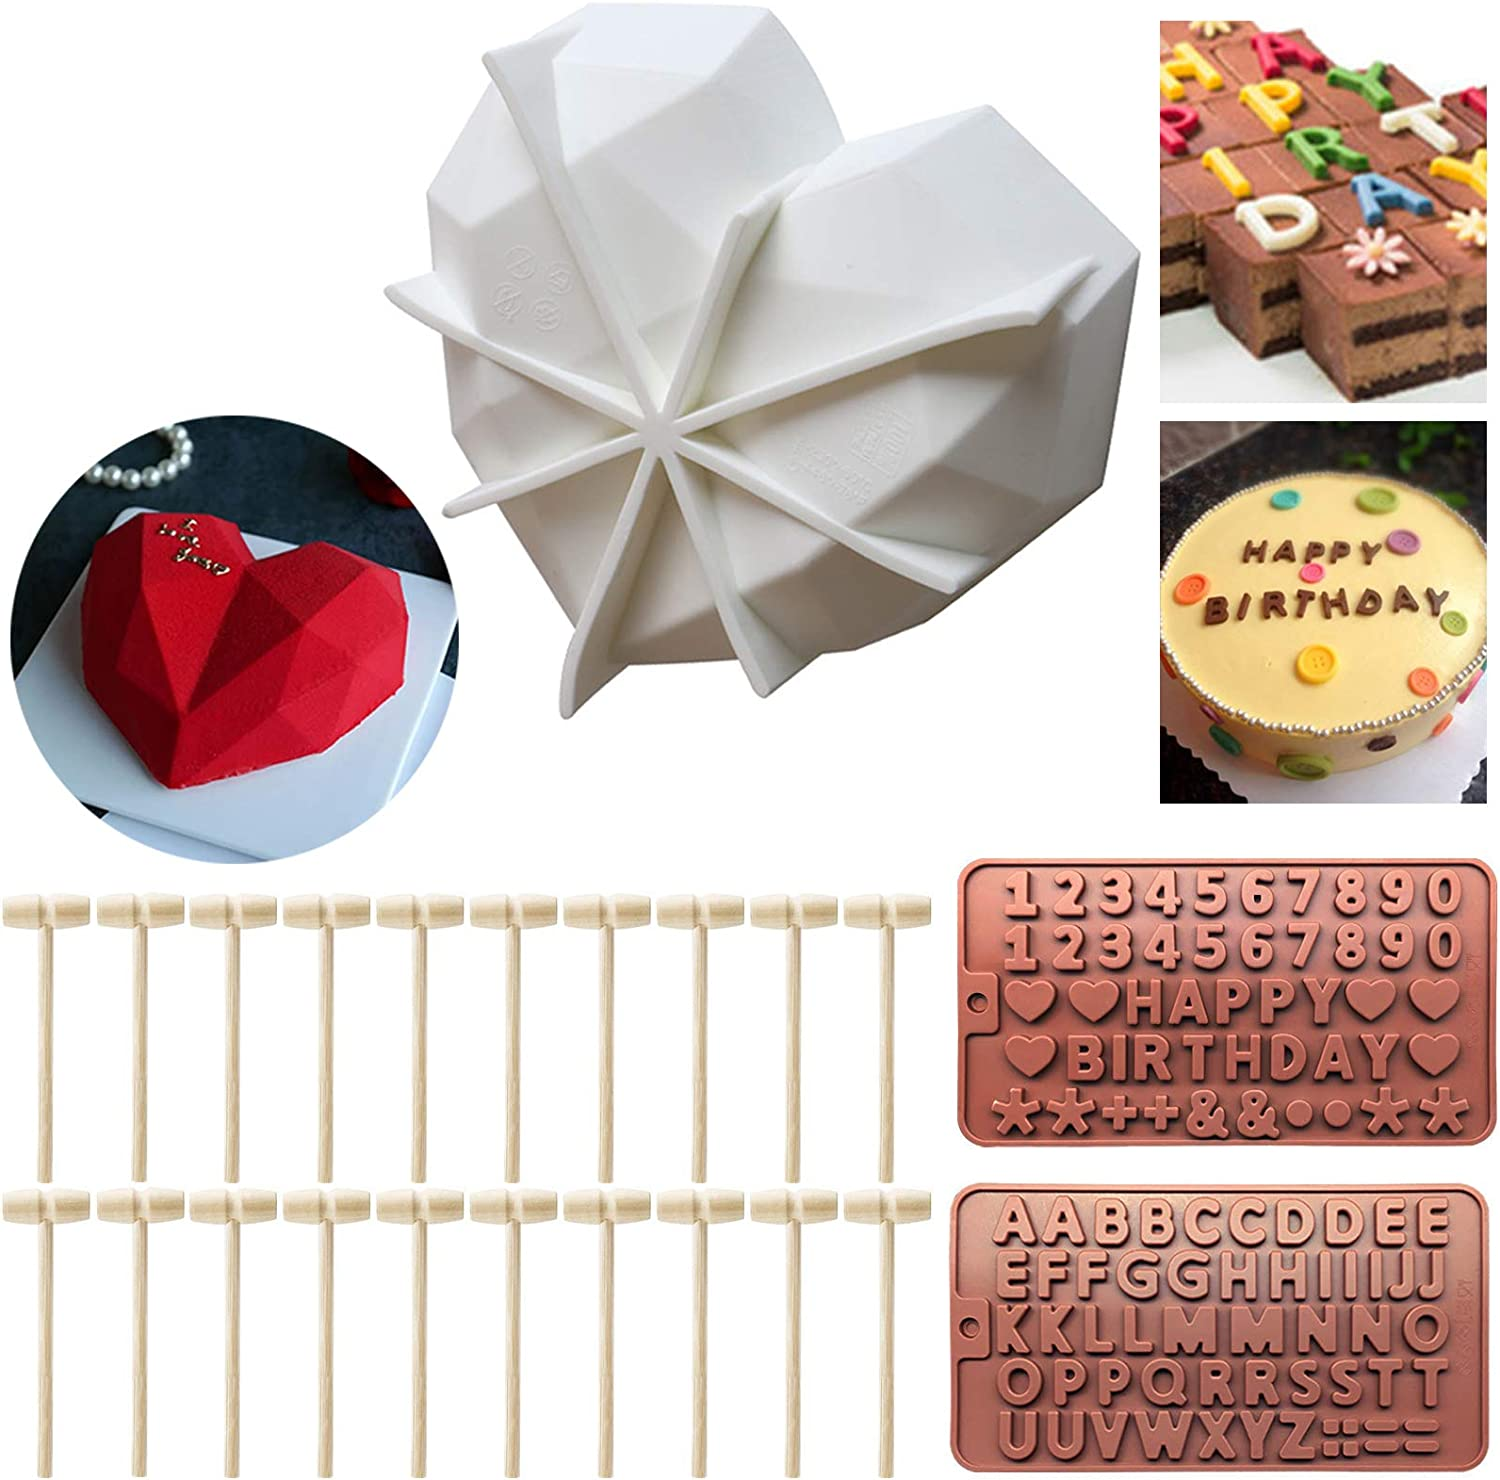 Diamond Heart Mousse Cake Mold Trays Chocolate Love Shape Molds, 2 Pcs Silicone Letter Number Molds with 20 Pieces Wooden Hammers Mallet Pounding Toy Silicone Baking Pan-Food Grade & BPA Free